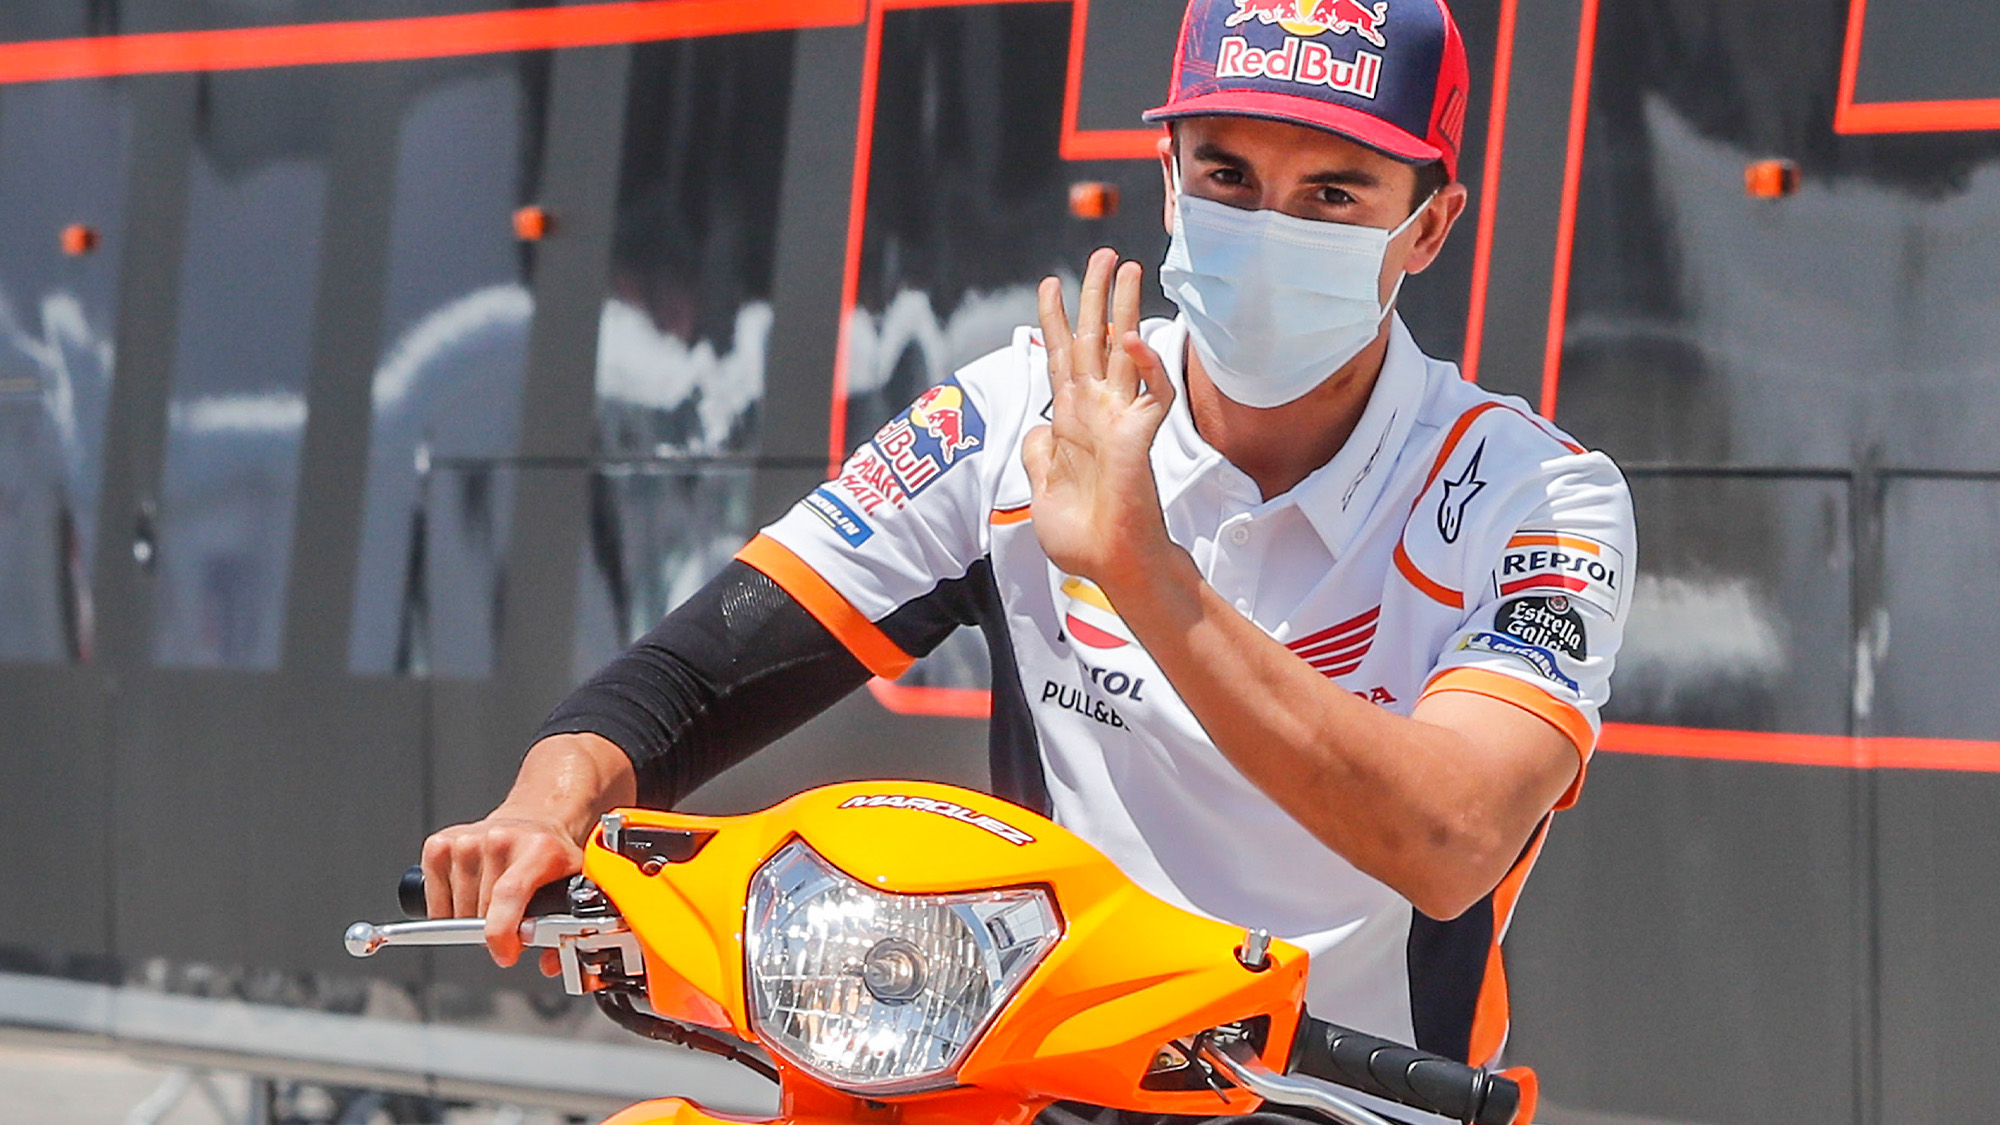 [Imagem: Marc-Marquez-holds-his-hand-up.jpg]